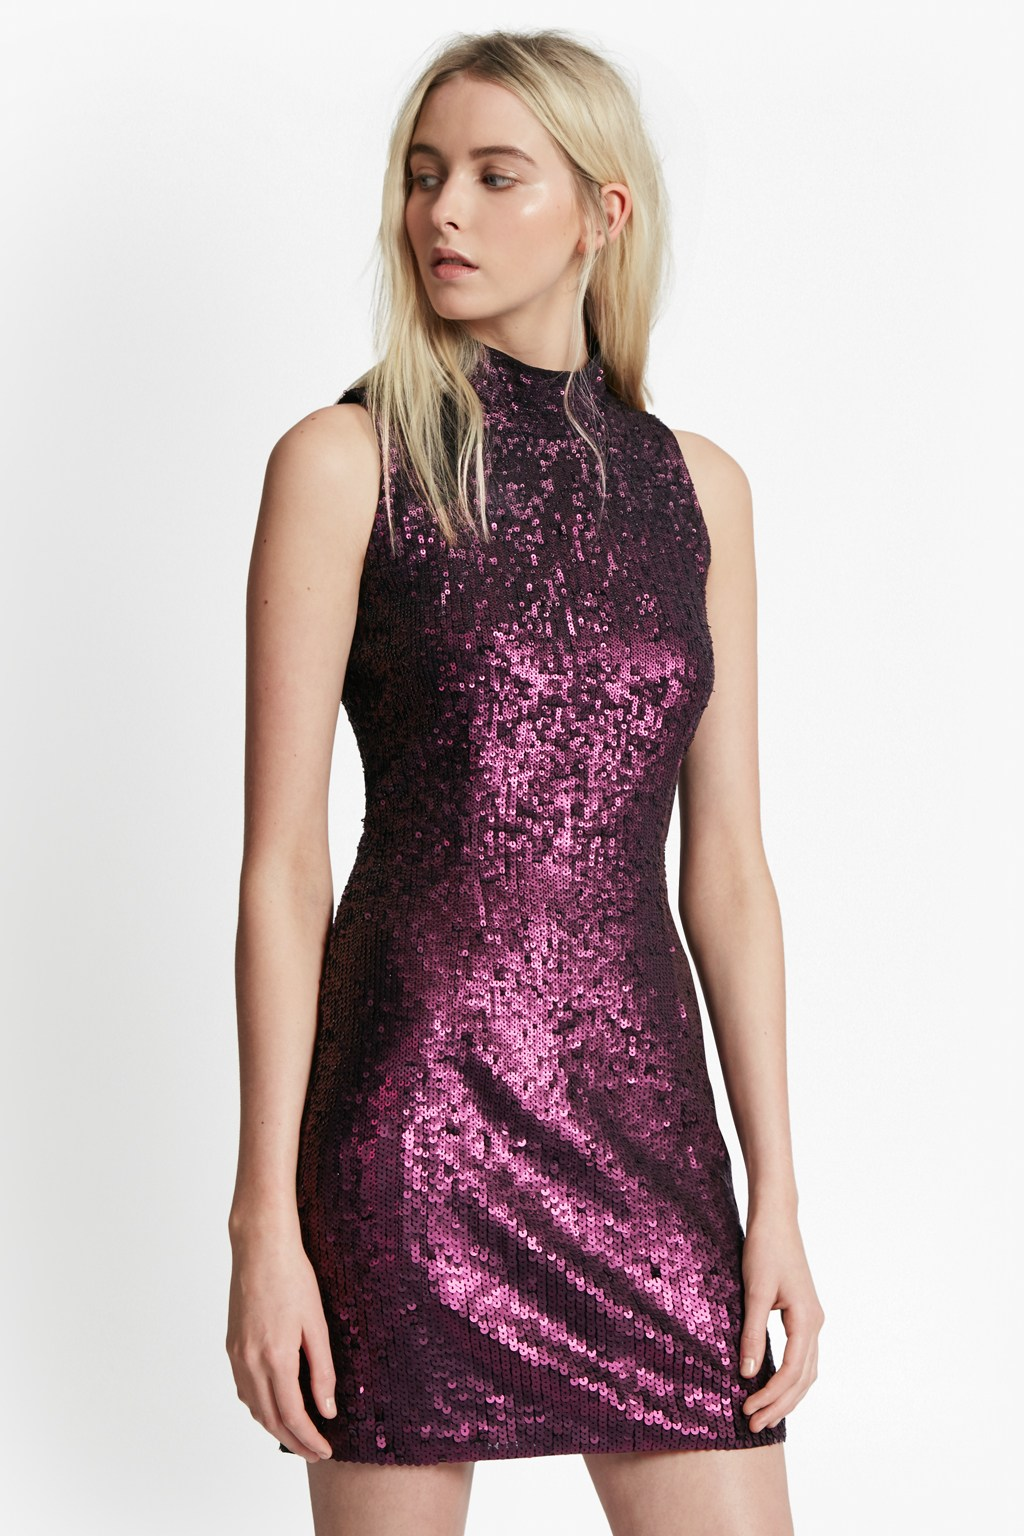 726a0cb0301 Starlight Sparkle High Neck Sequin Dress Faux Fur French